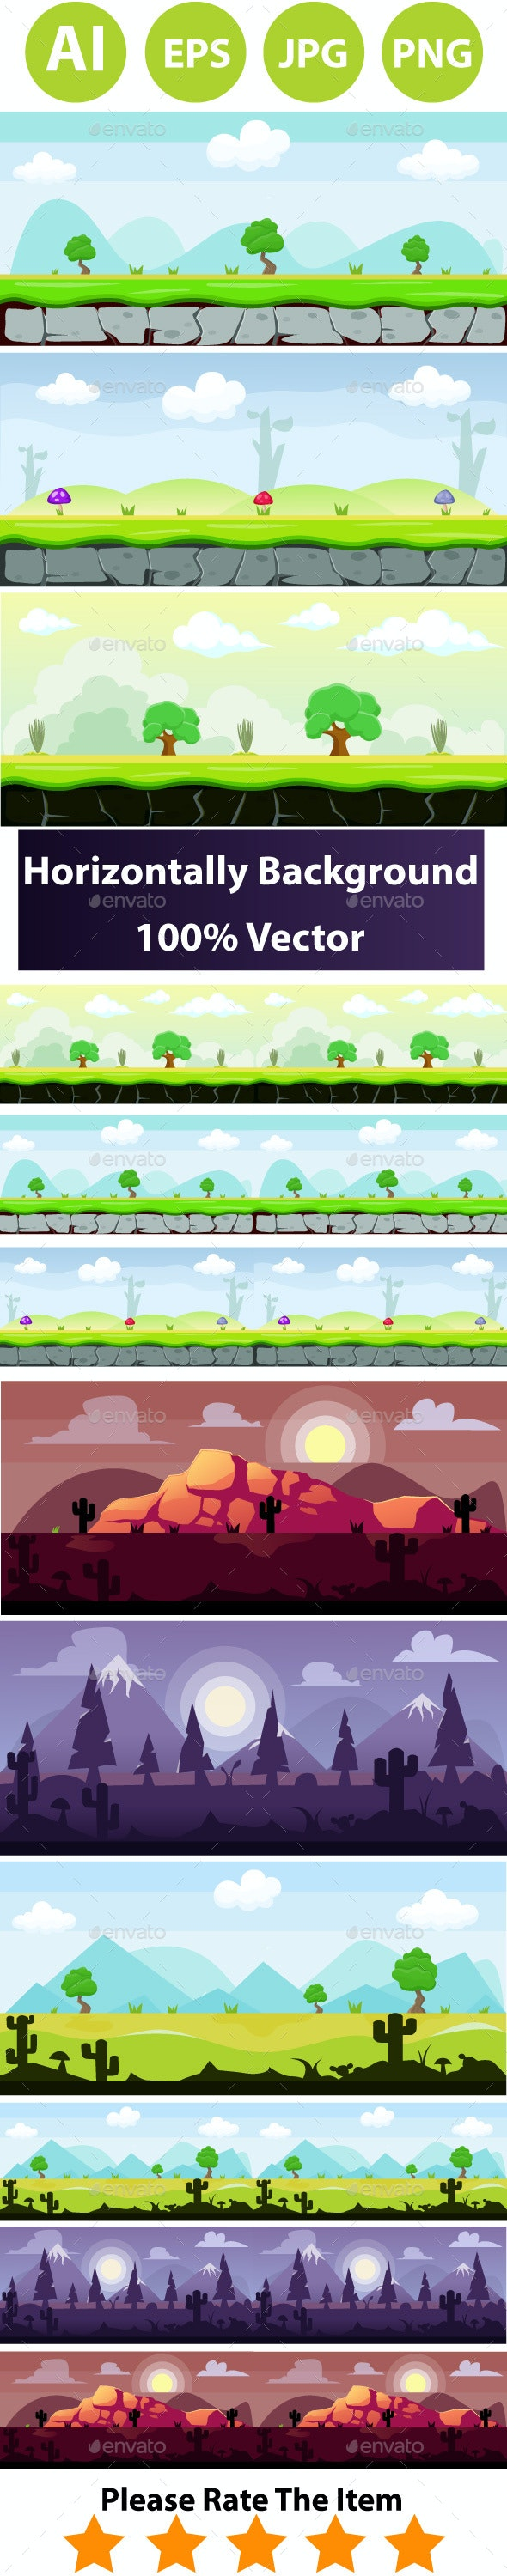 6 Game Background Bundle - Backgrounds Game Assets